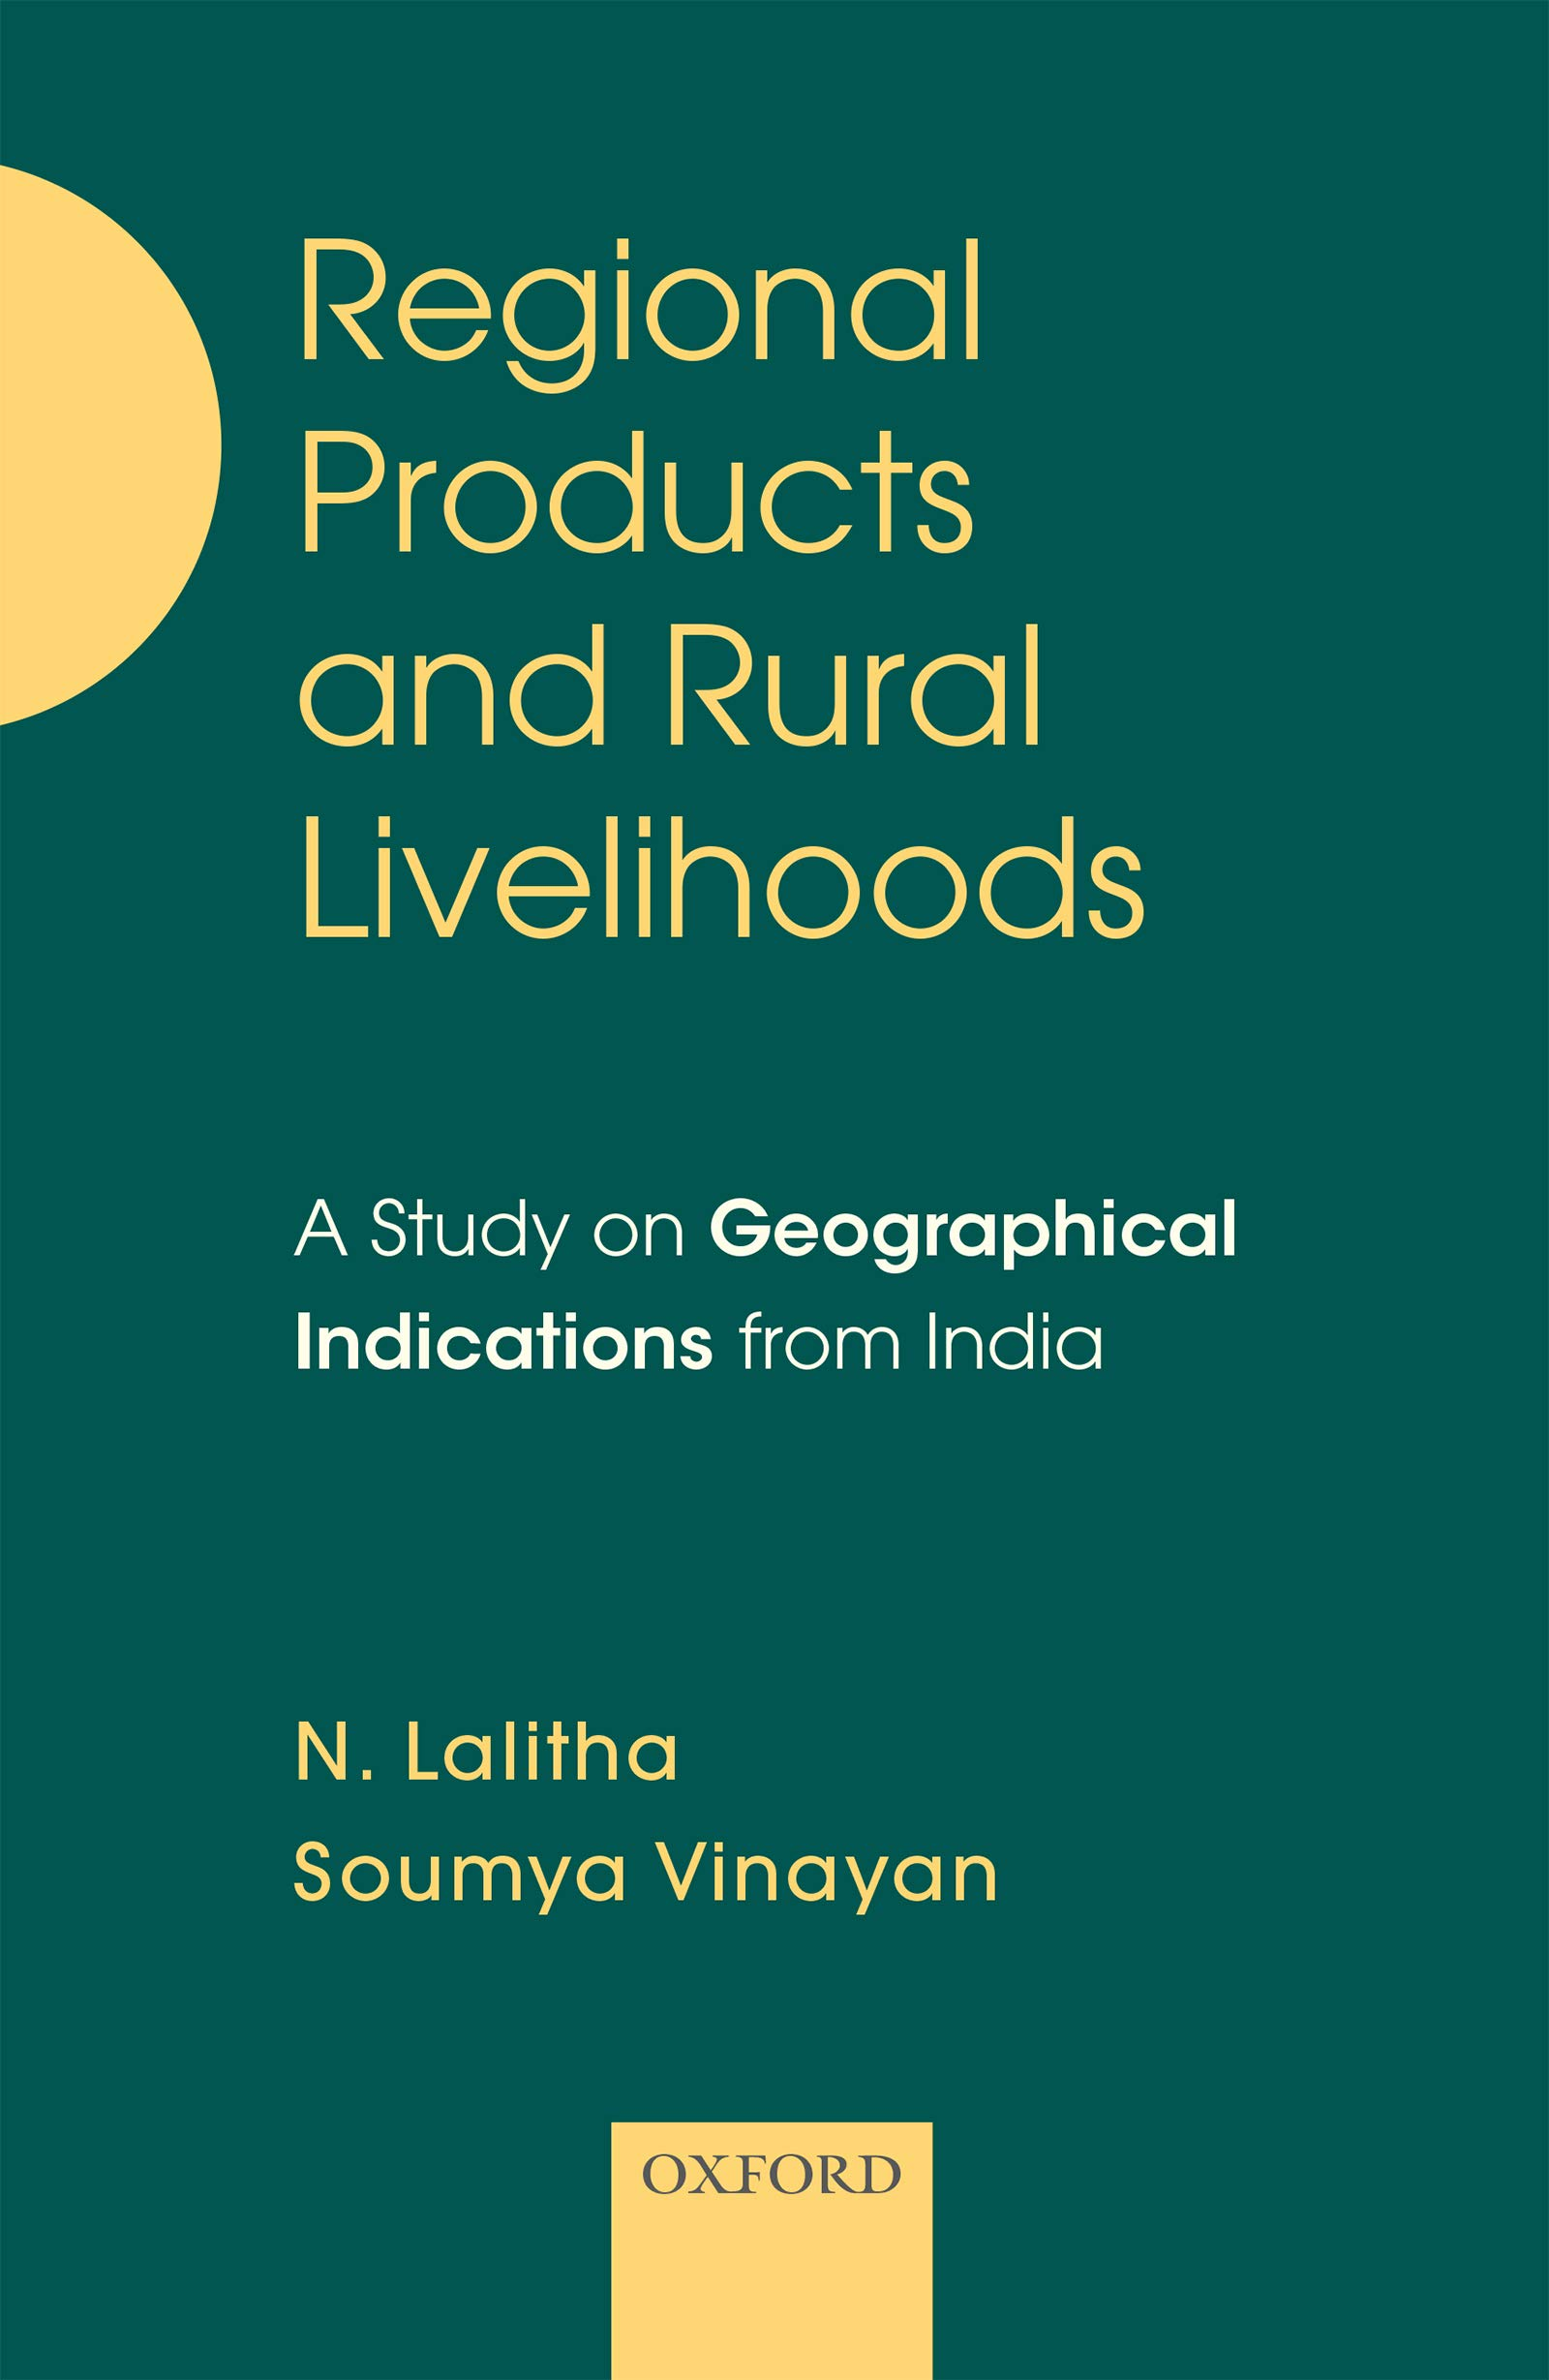 Regional Products and Rural Livelihoods: A Study on Geographical Indications from India